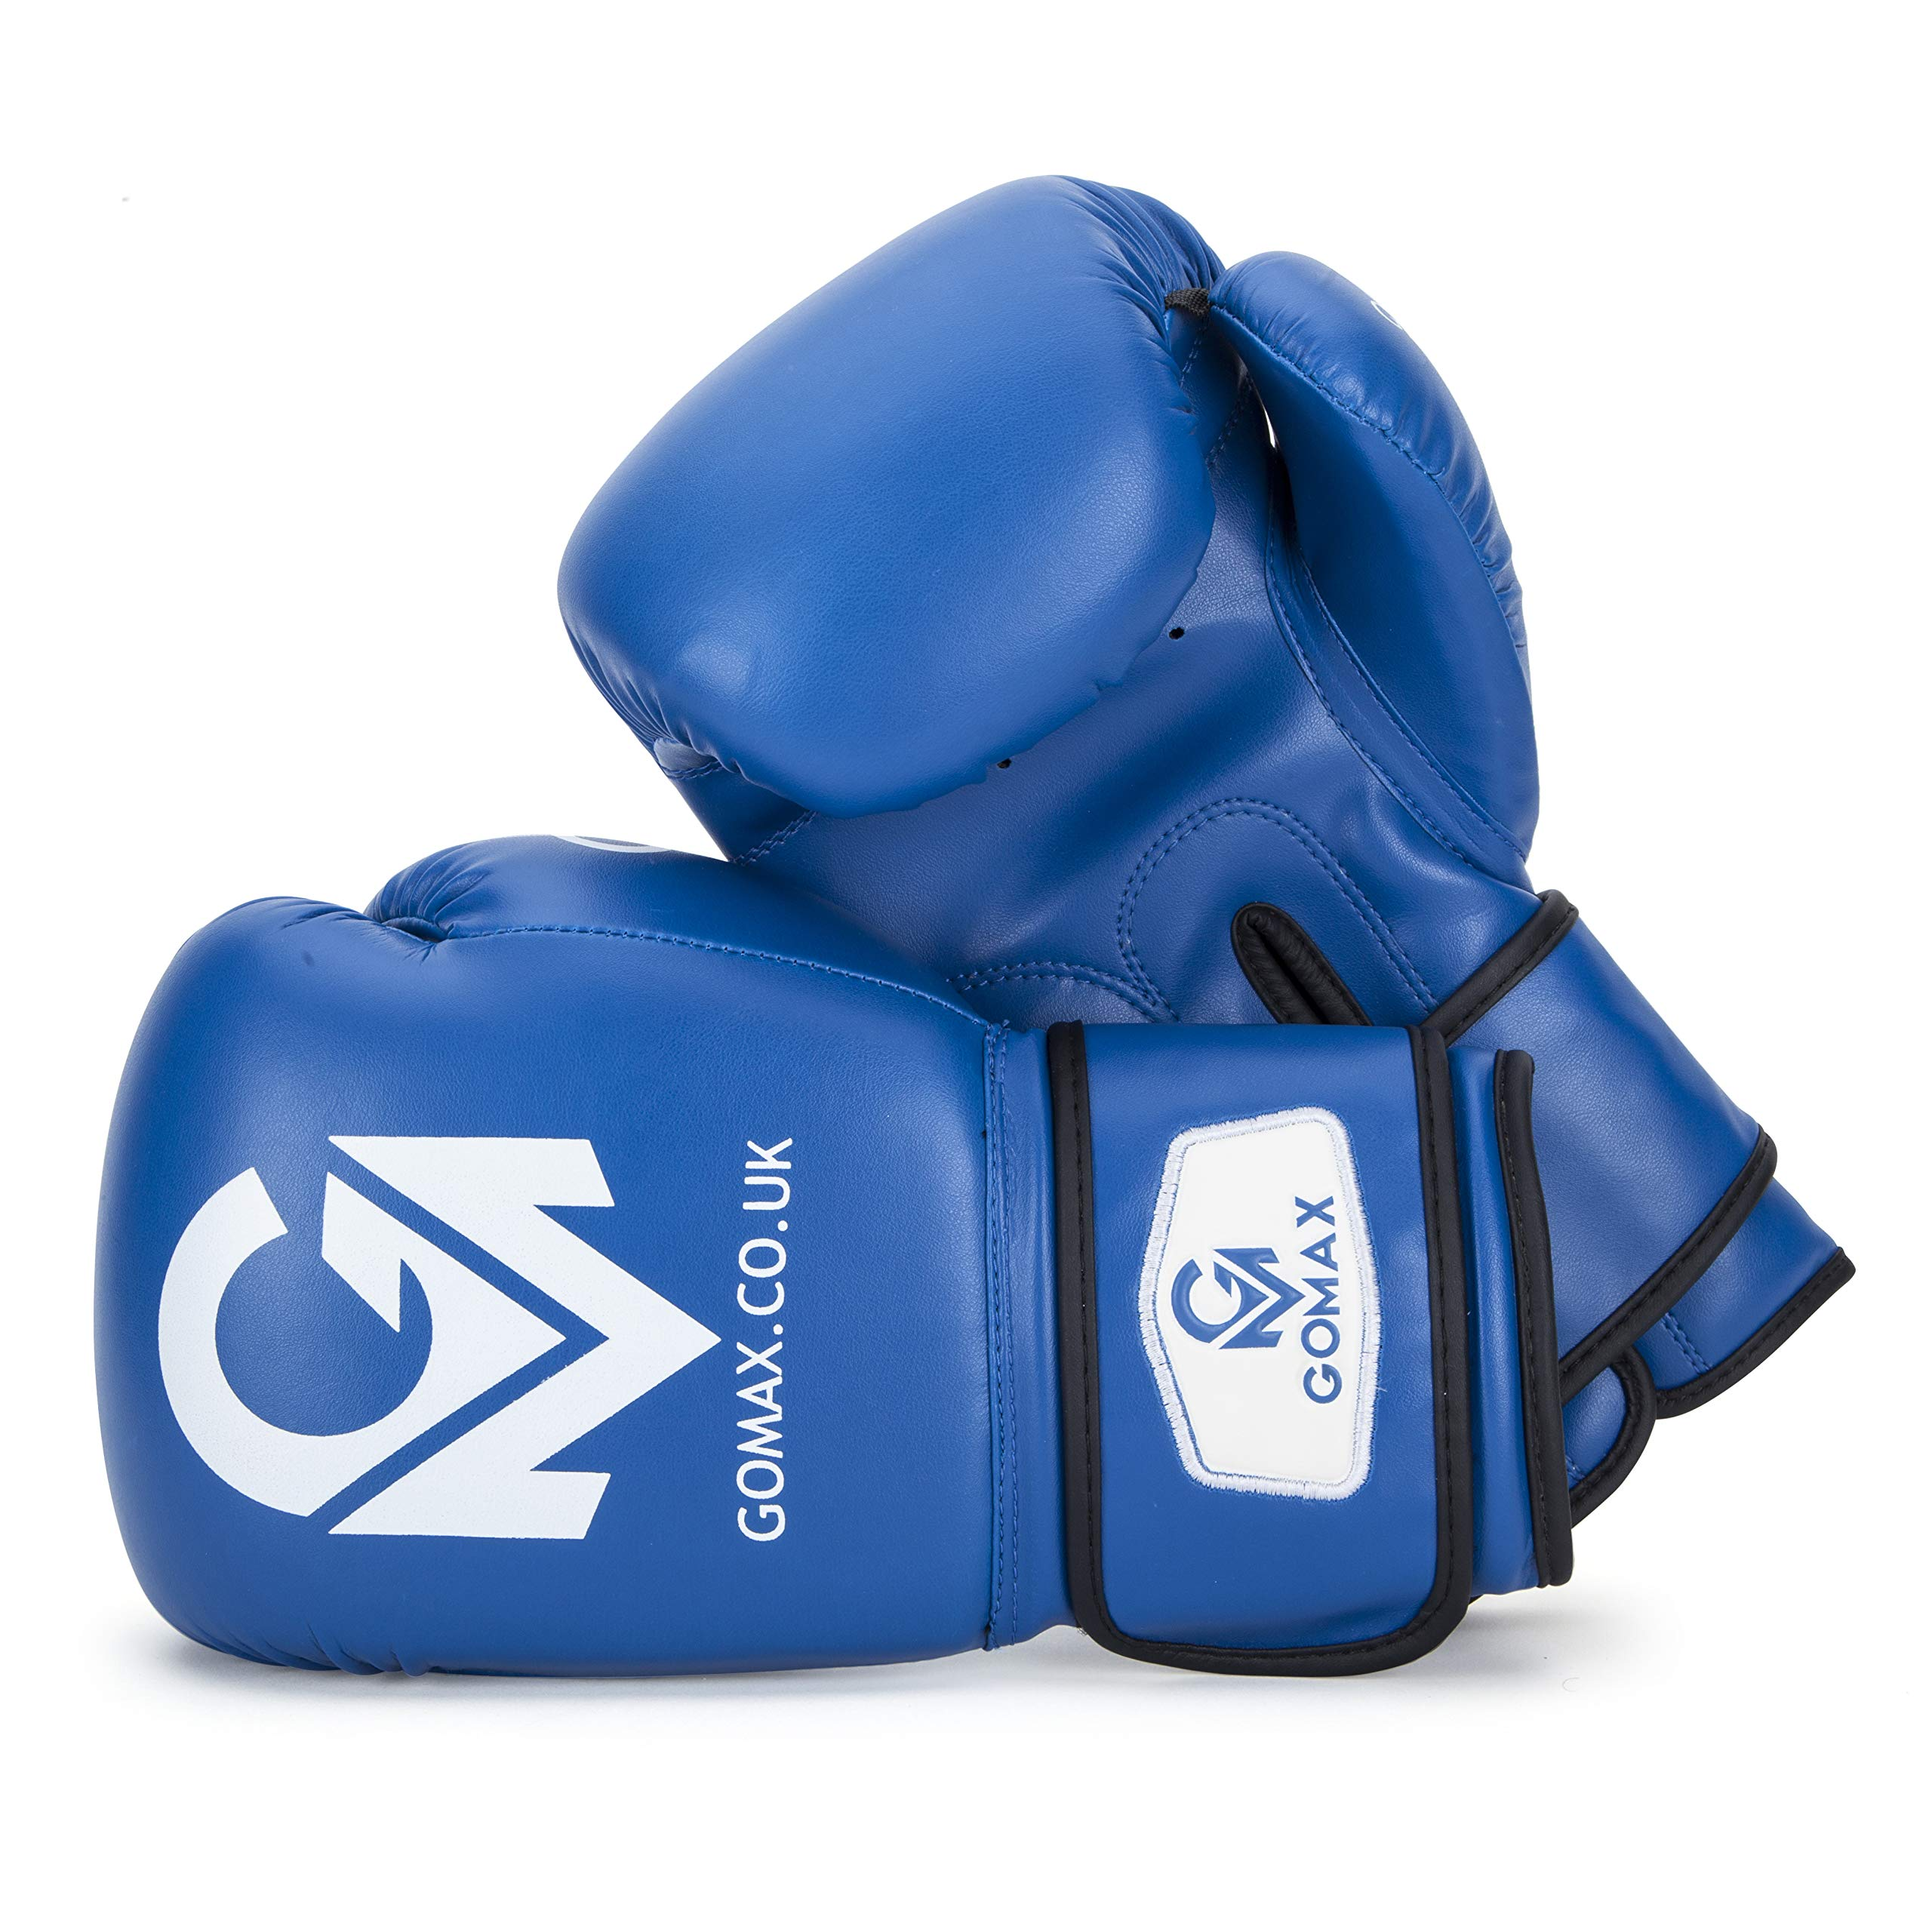 12 GoMax Leather Boxing Gloves 6 8 10 16 oz Boxing Gloves for Training Punching Sparring Punching Bag Boxing Bag Gloves Punch Bag Mitts Muay Thai Kickboxing MMA Martial Arts Workout Gloves 14